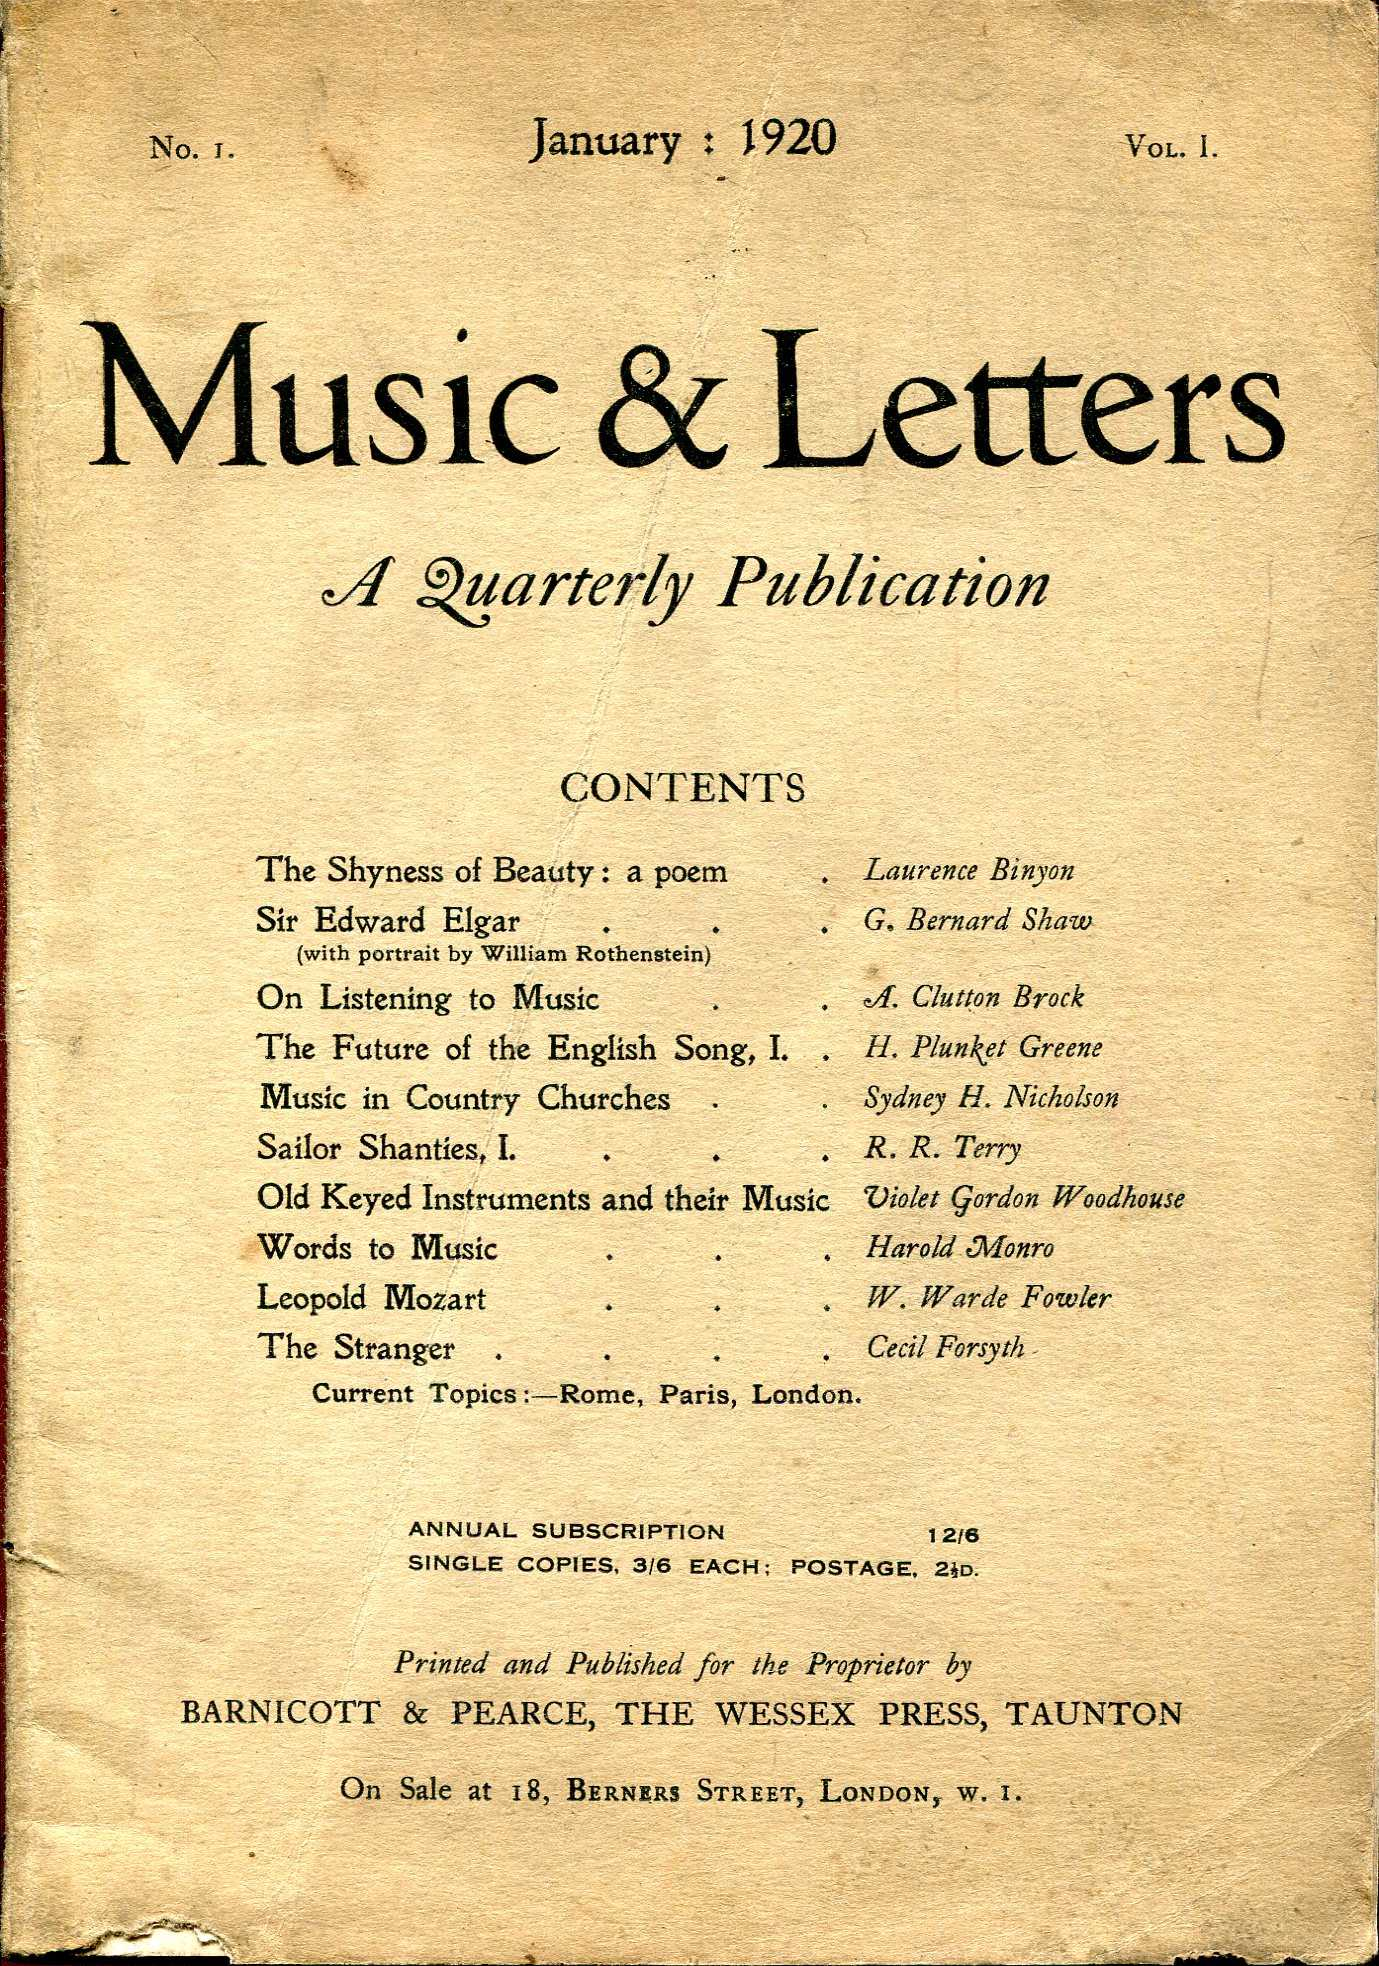 Image for Music & Letters : A Quarterly Publication, volume I, No. 1, January 1920